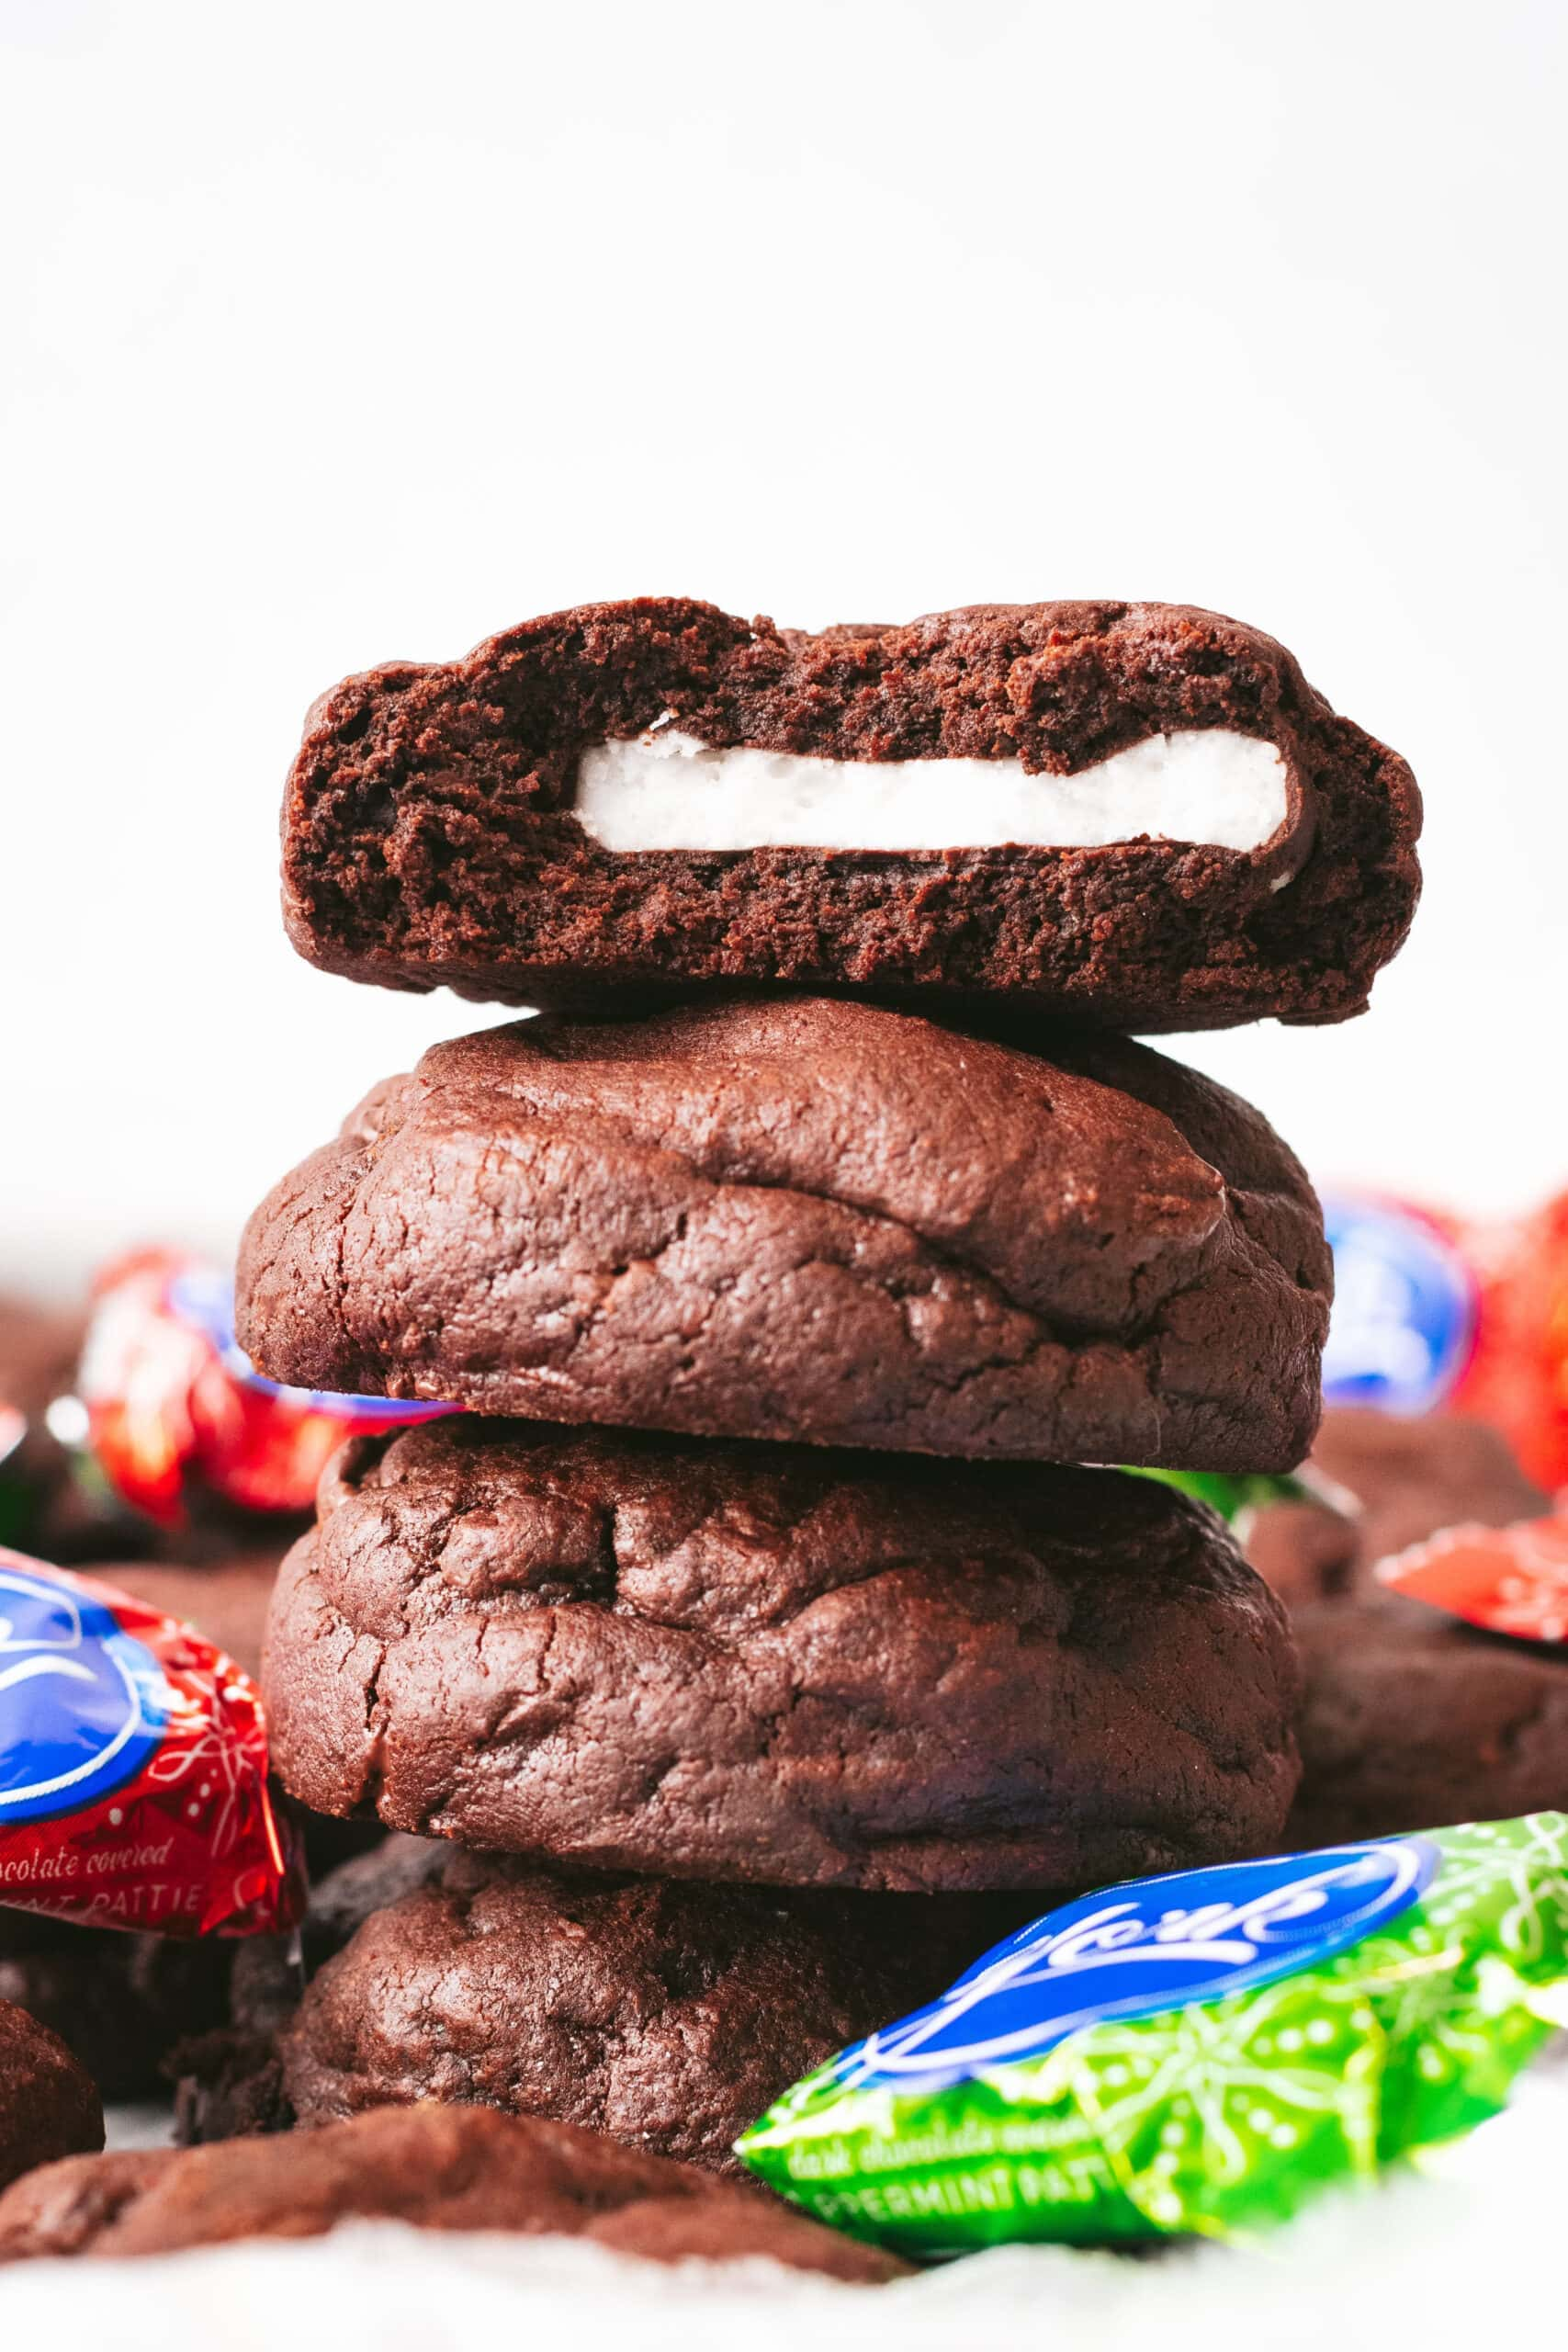 A stack of peppermint patty stuffed brownie cookies. the top one has been broken in half revealing a strip of white peppermint filling inside.